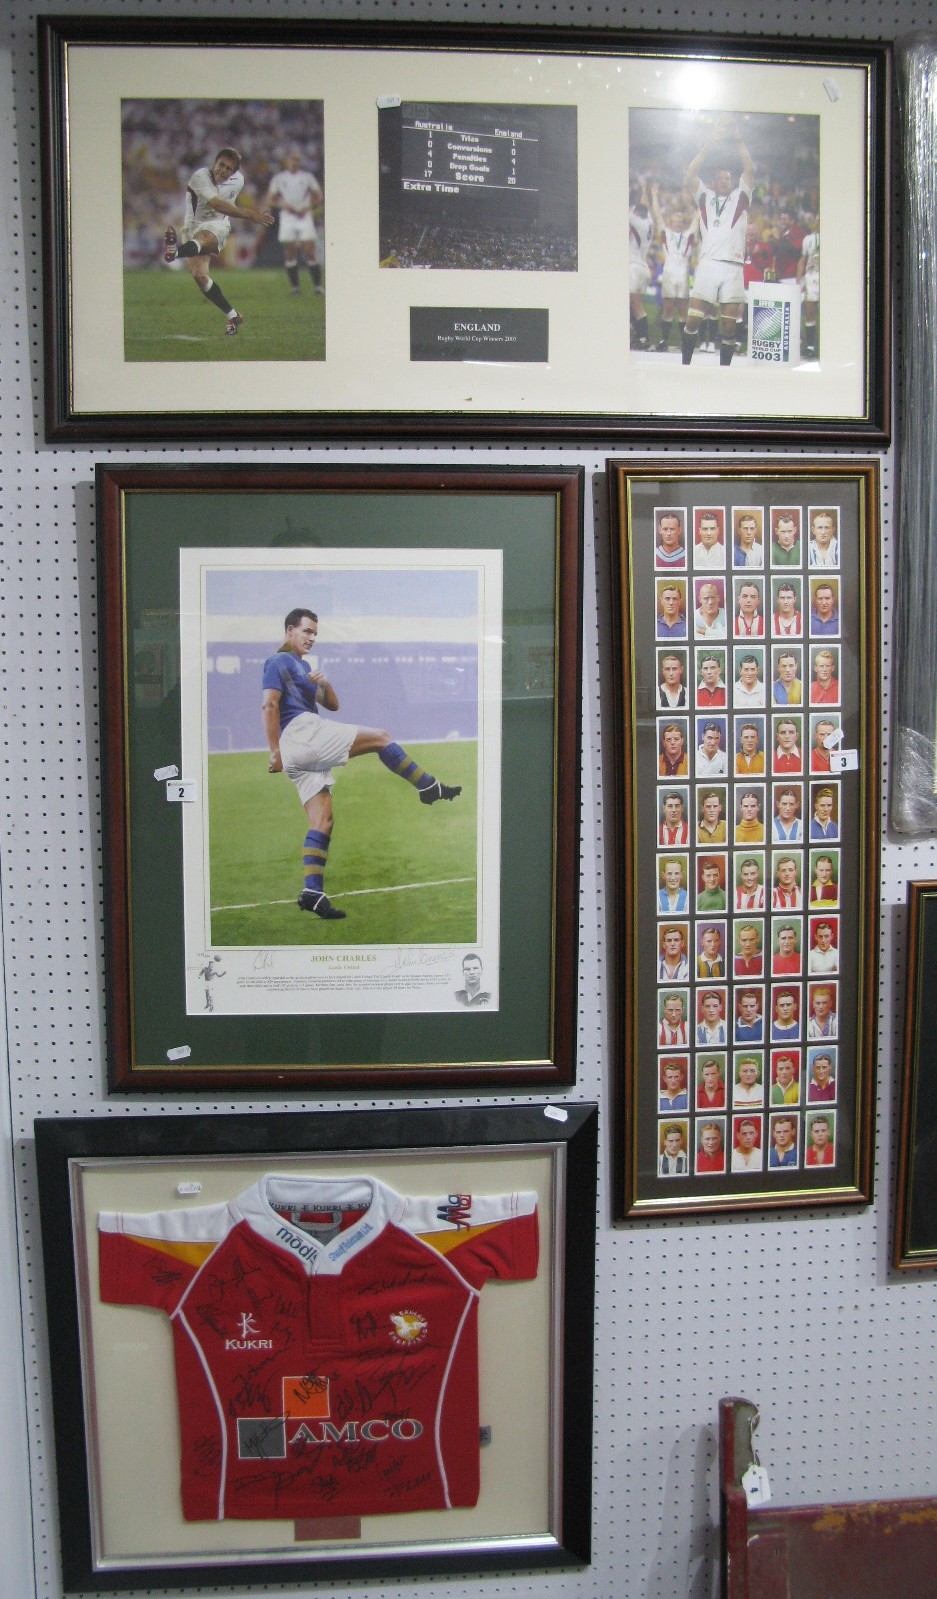 Lot 2 - A John Charles Limited Edition Coloured Print by Gary Brandham, 39.5 x 28cm, pencil signed by player